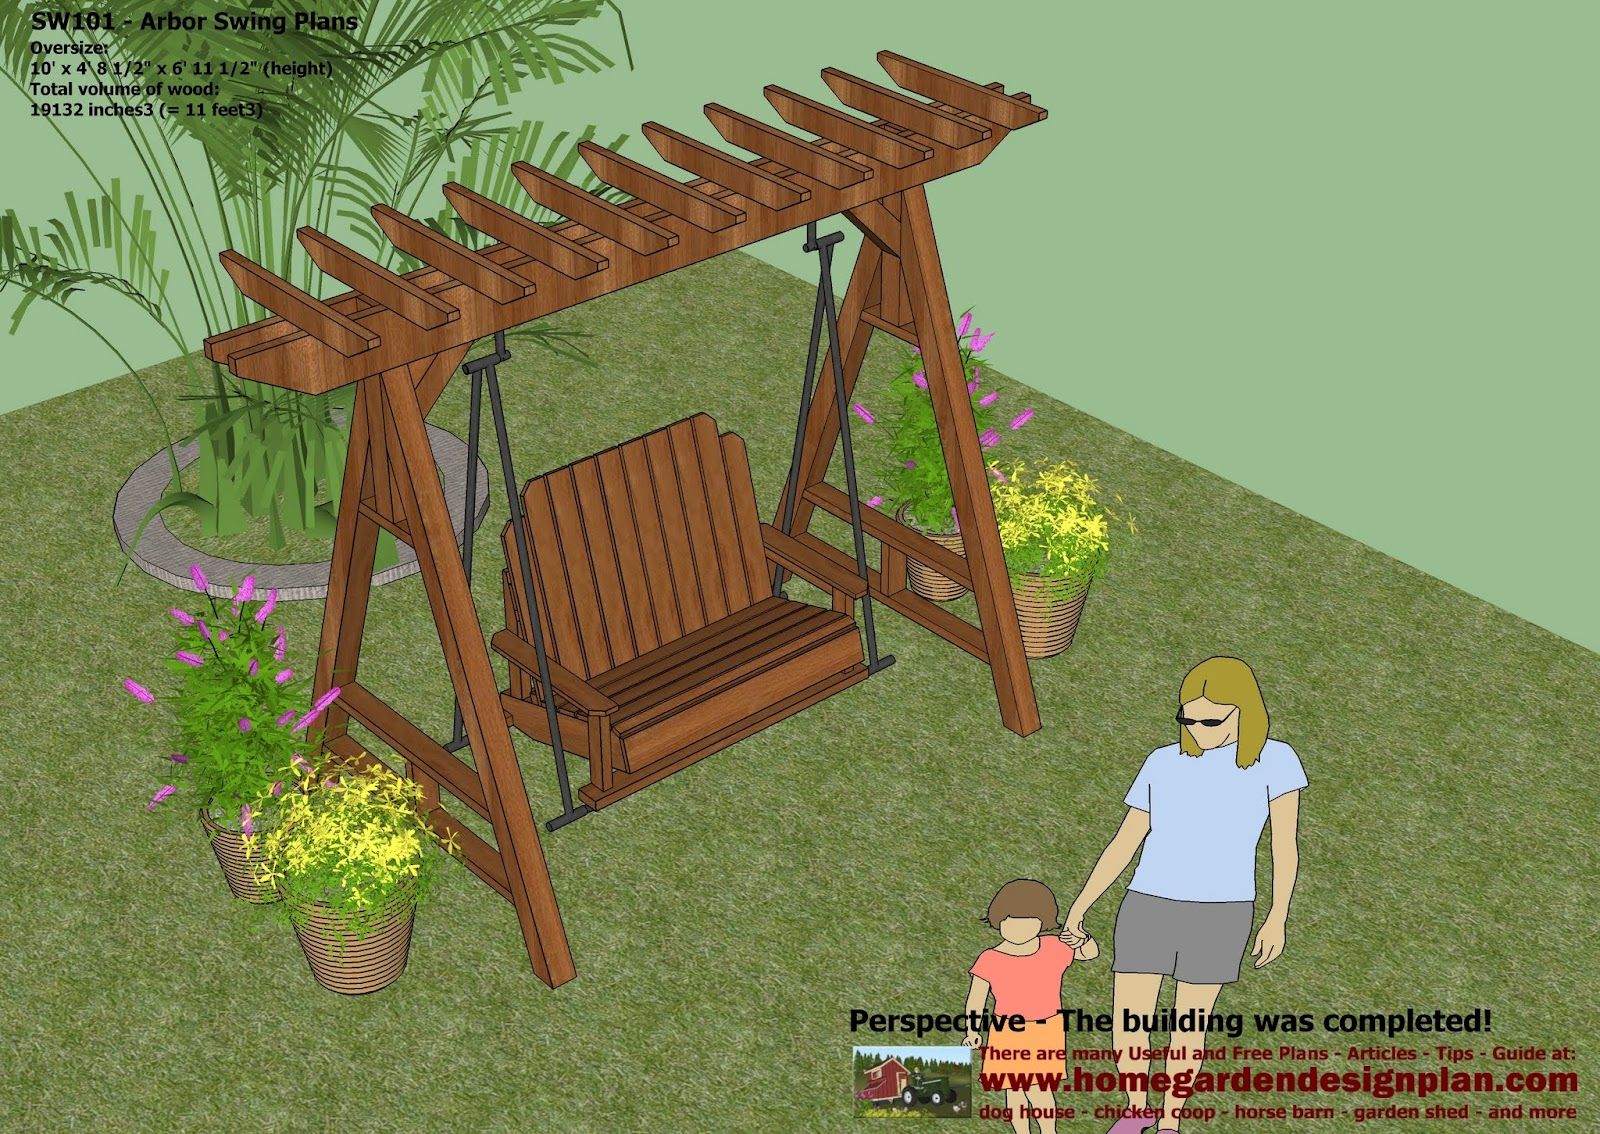 Home Garden Plans: SW101   Arbor Swing Plans Construction   Graden Sw..